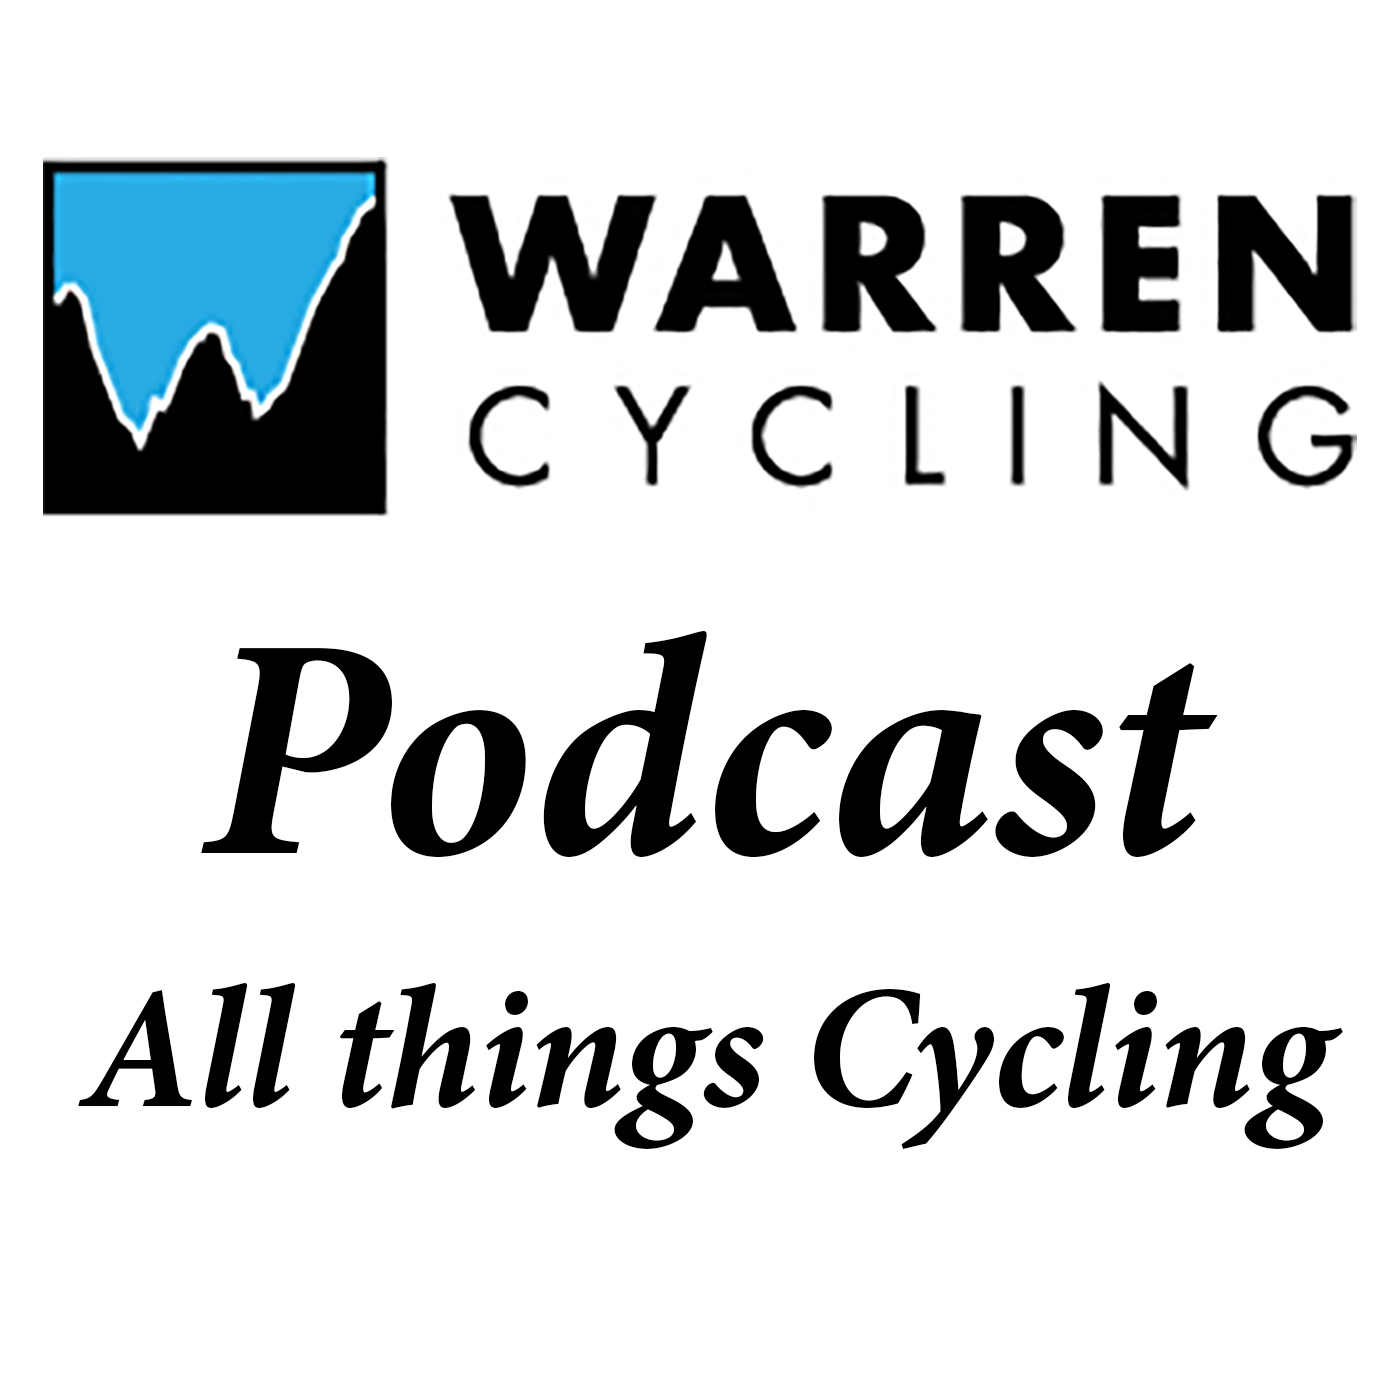 Warren Cycling Podcast Episode 240: World Tour Racing 2021 show art